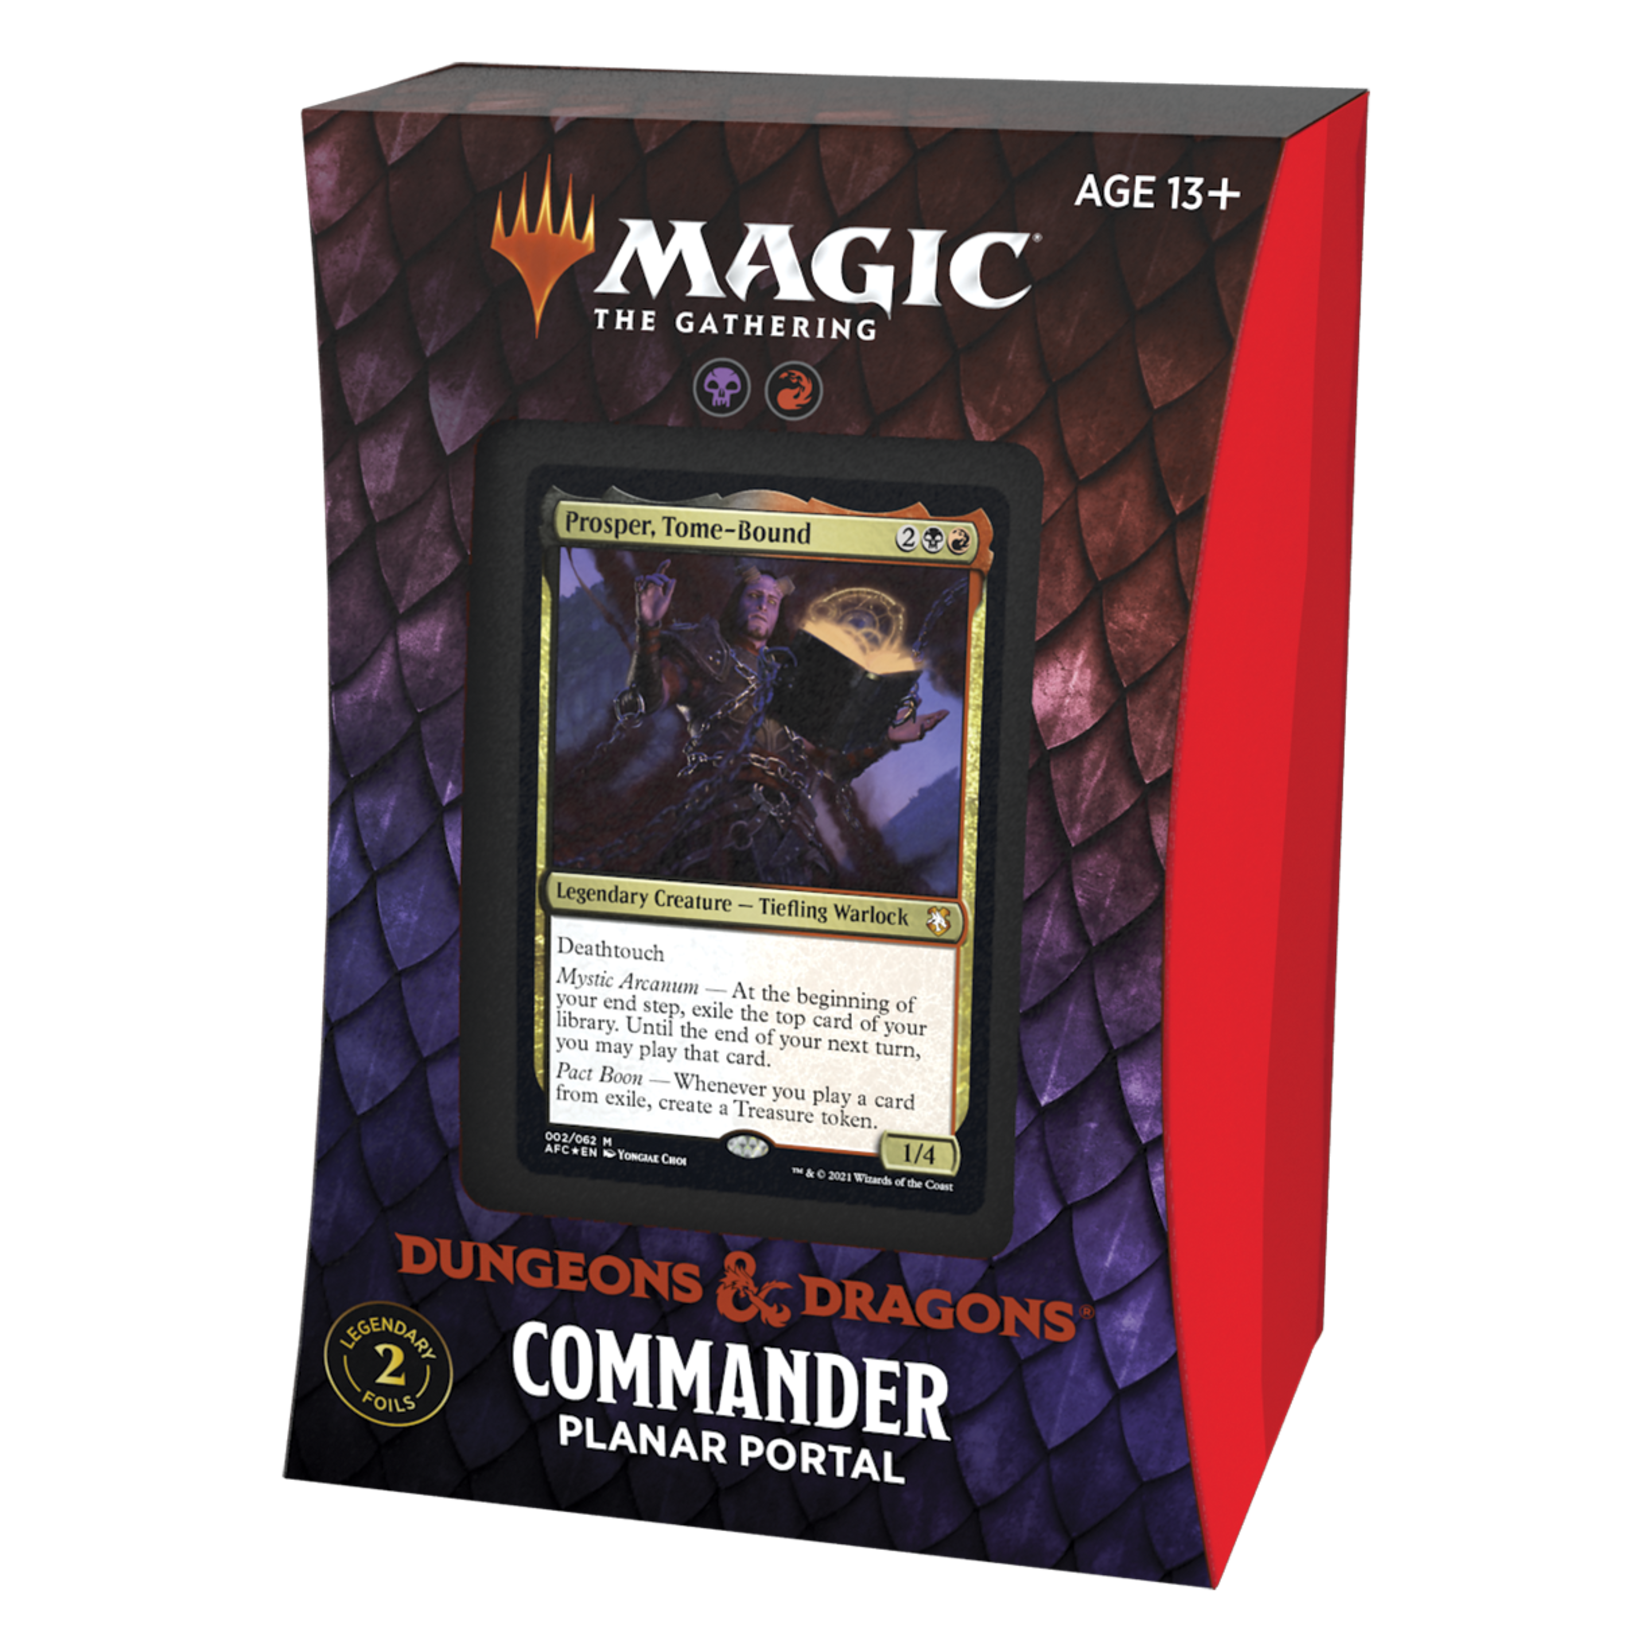 Magic: The Gathering Magic: The Gathering - Adventures in the Forgotten Realms Commander Deck - Planar Portal